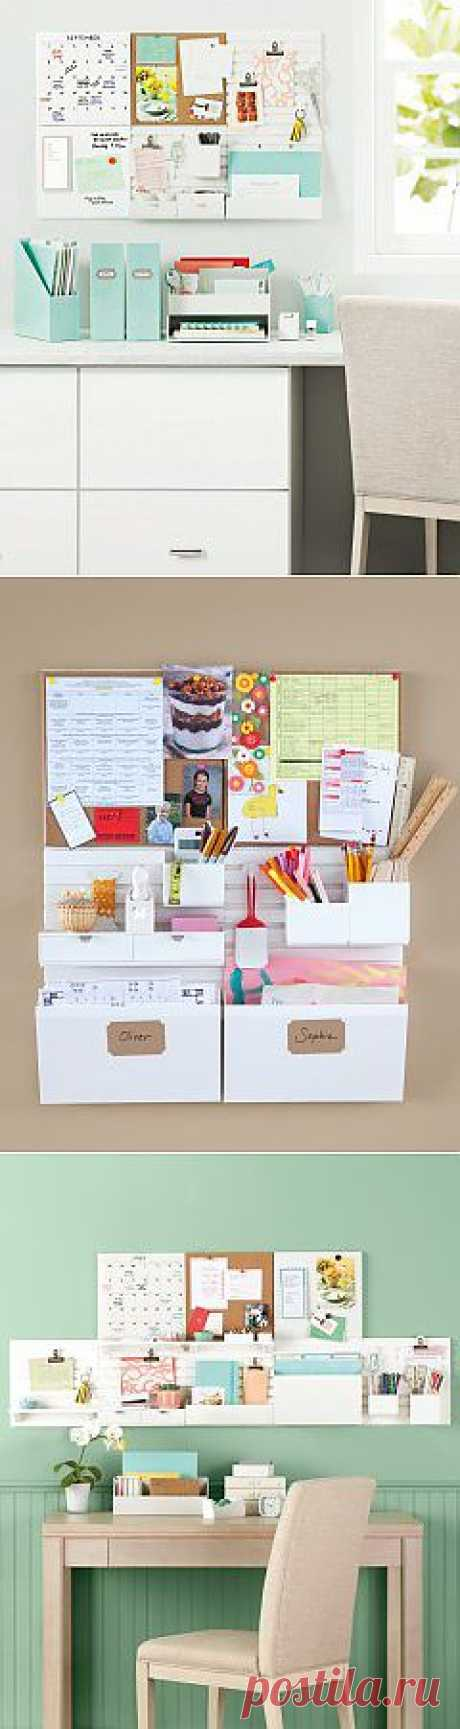 Back to School | How To and Instructions | Martha Stewart